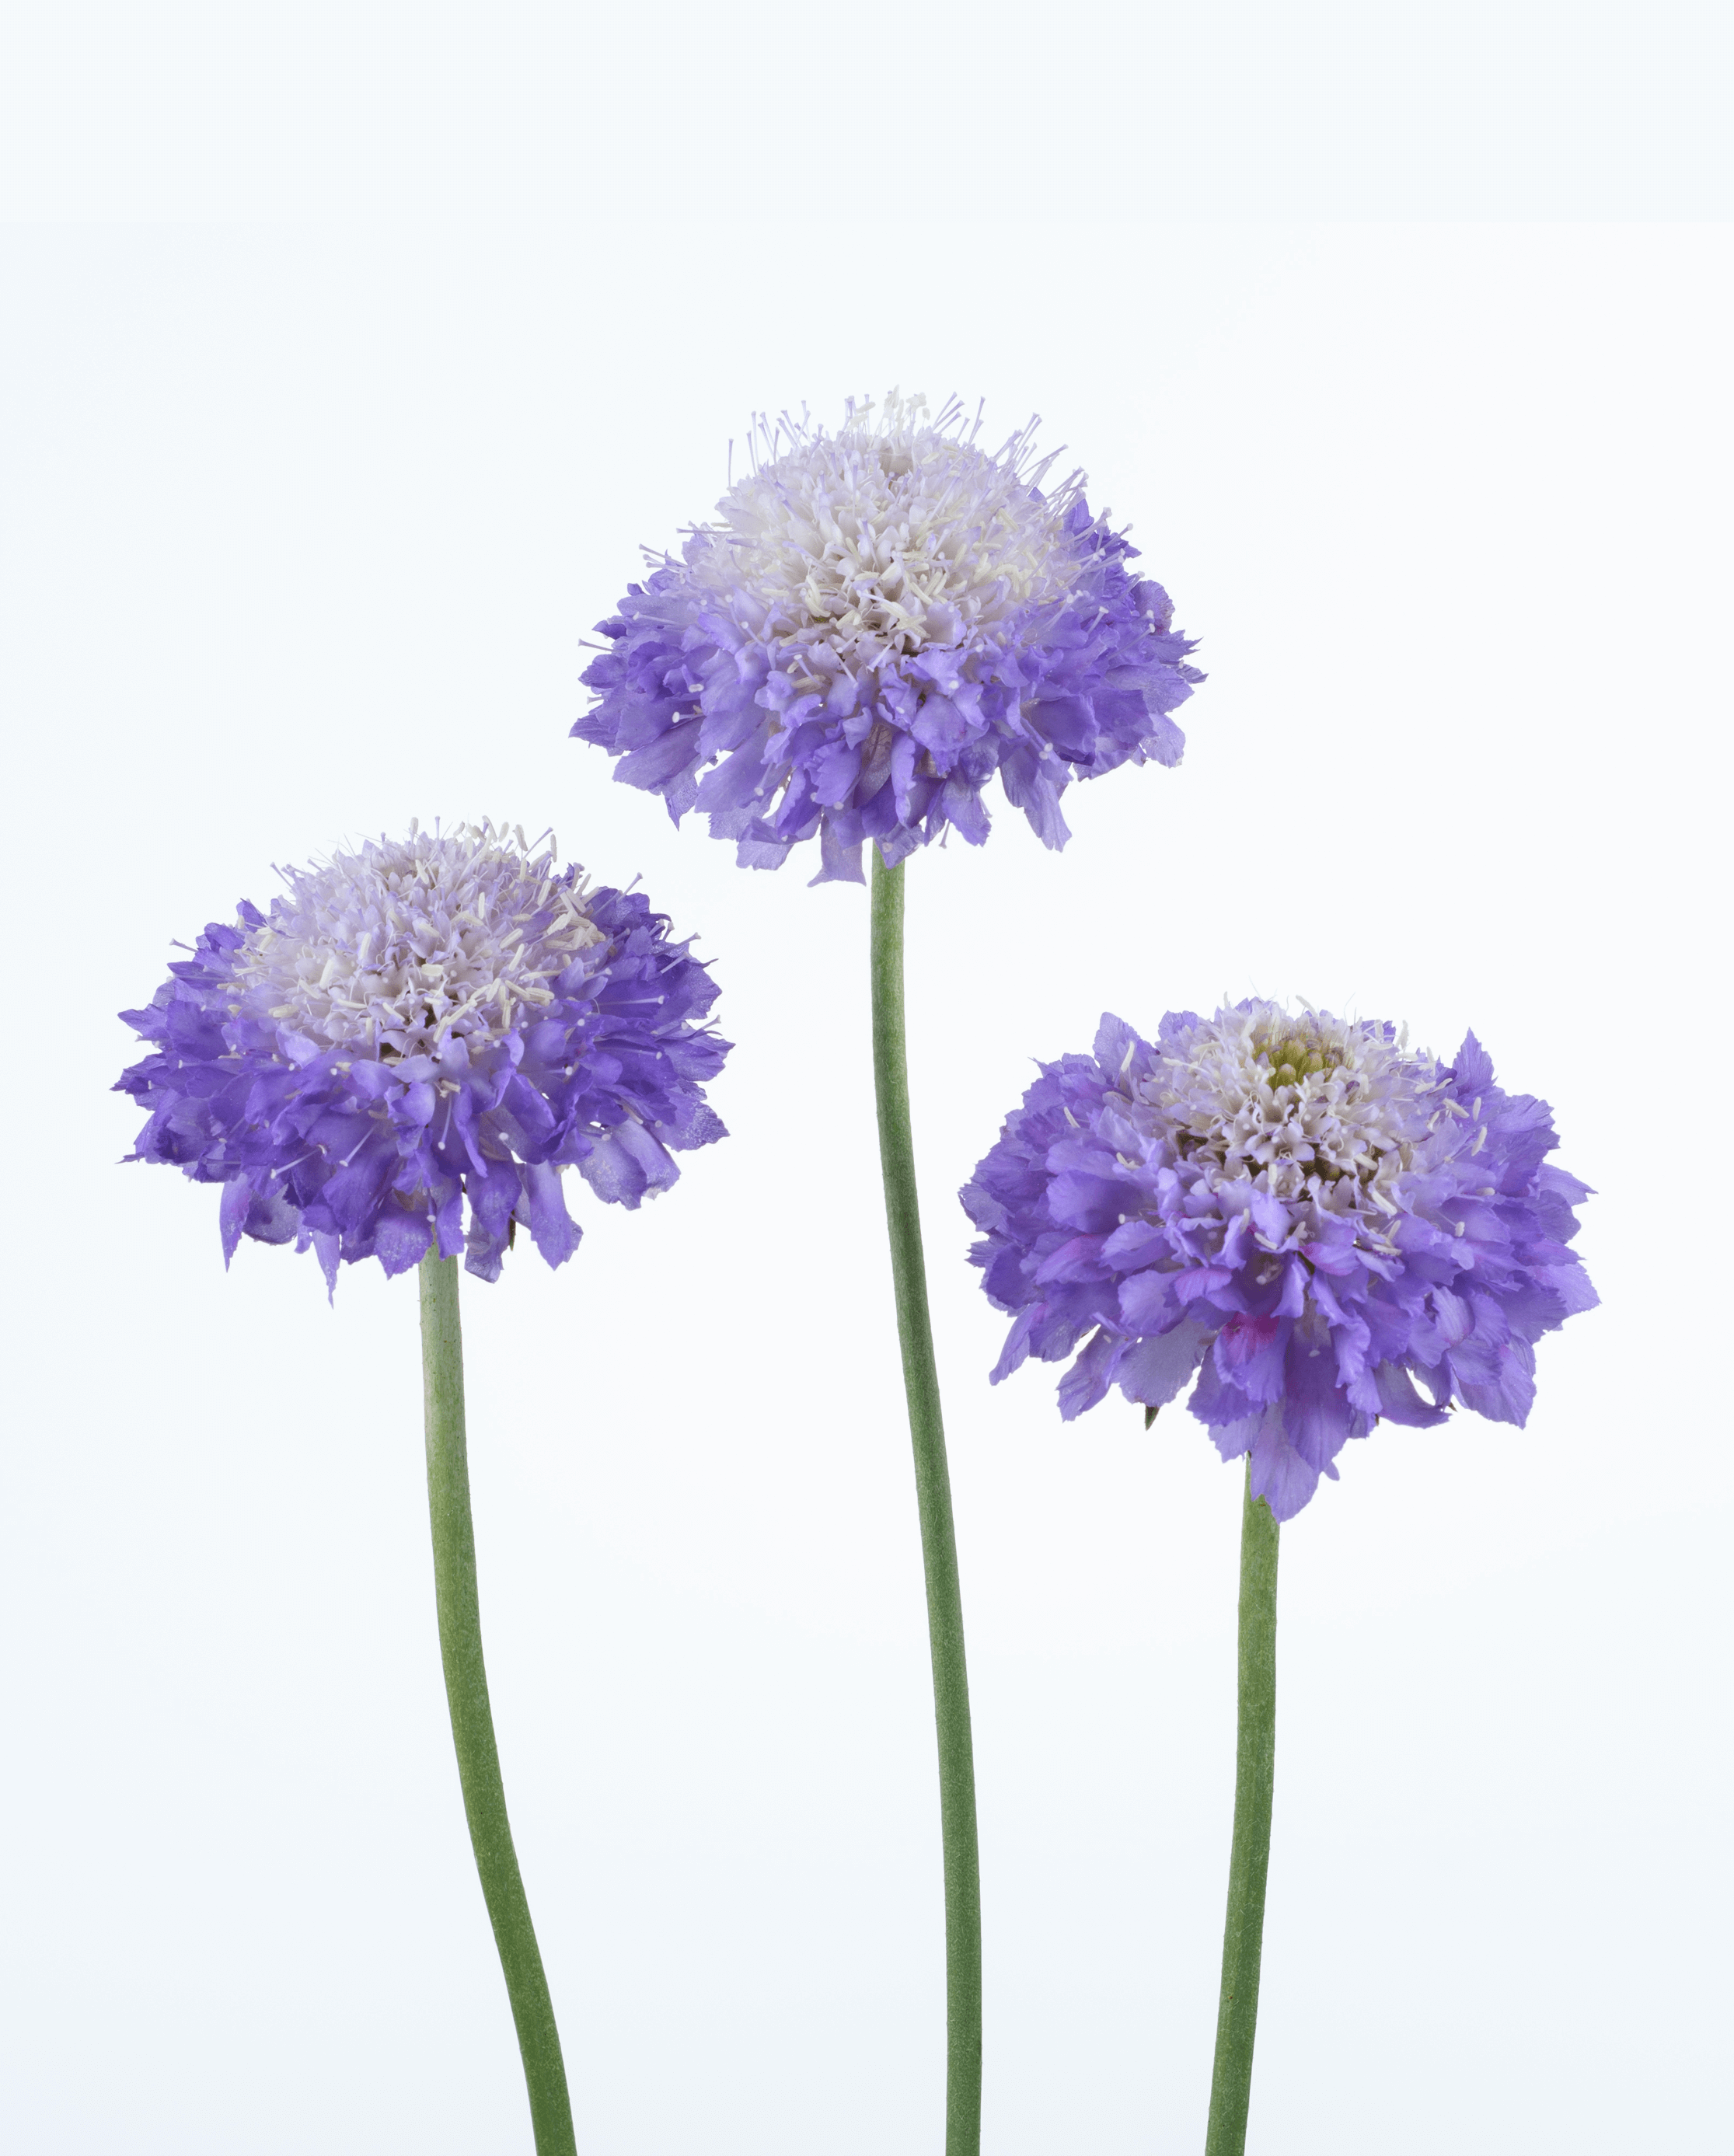 Scabiosa Scoop Series Pincushion Flower Cut Flowers Danziger